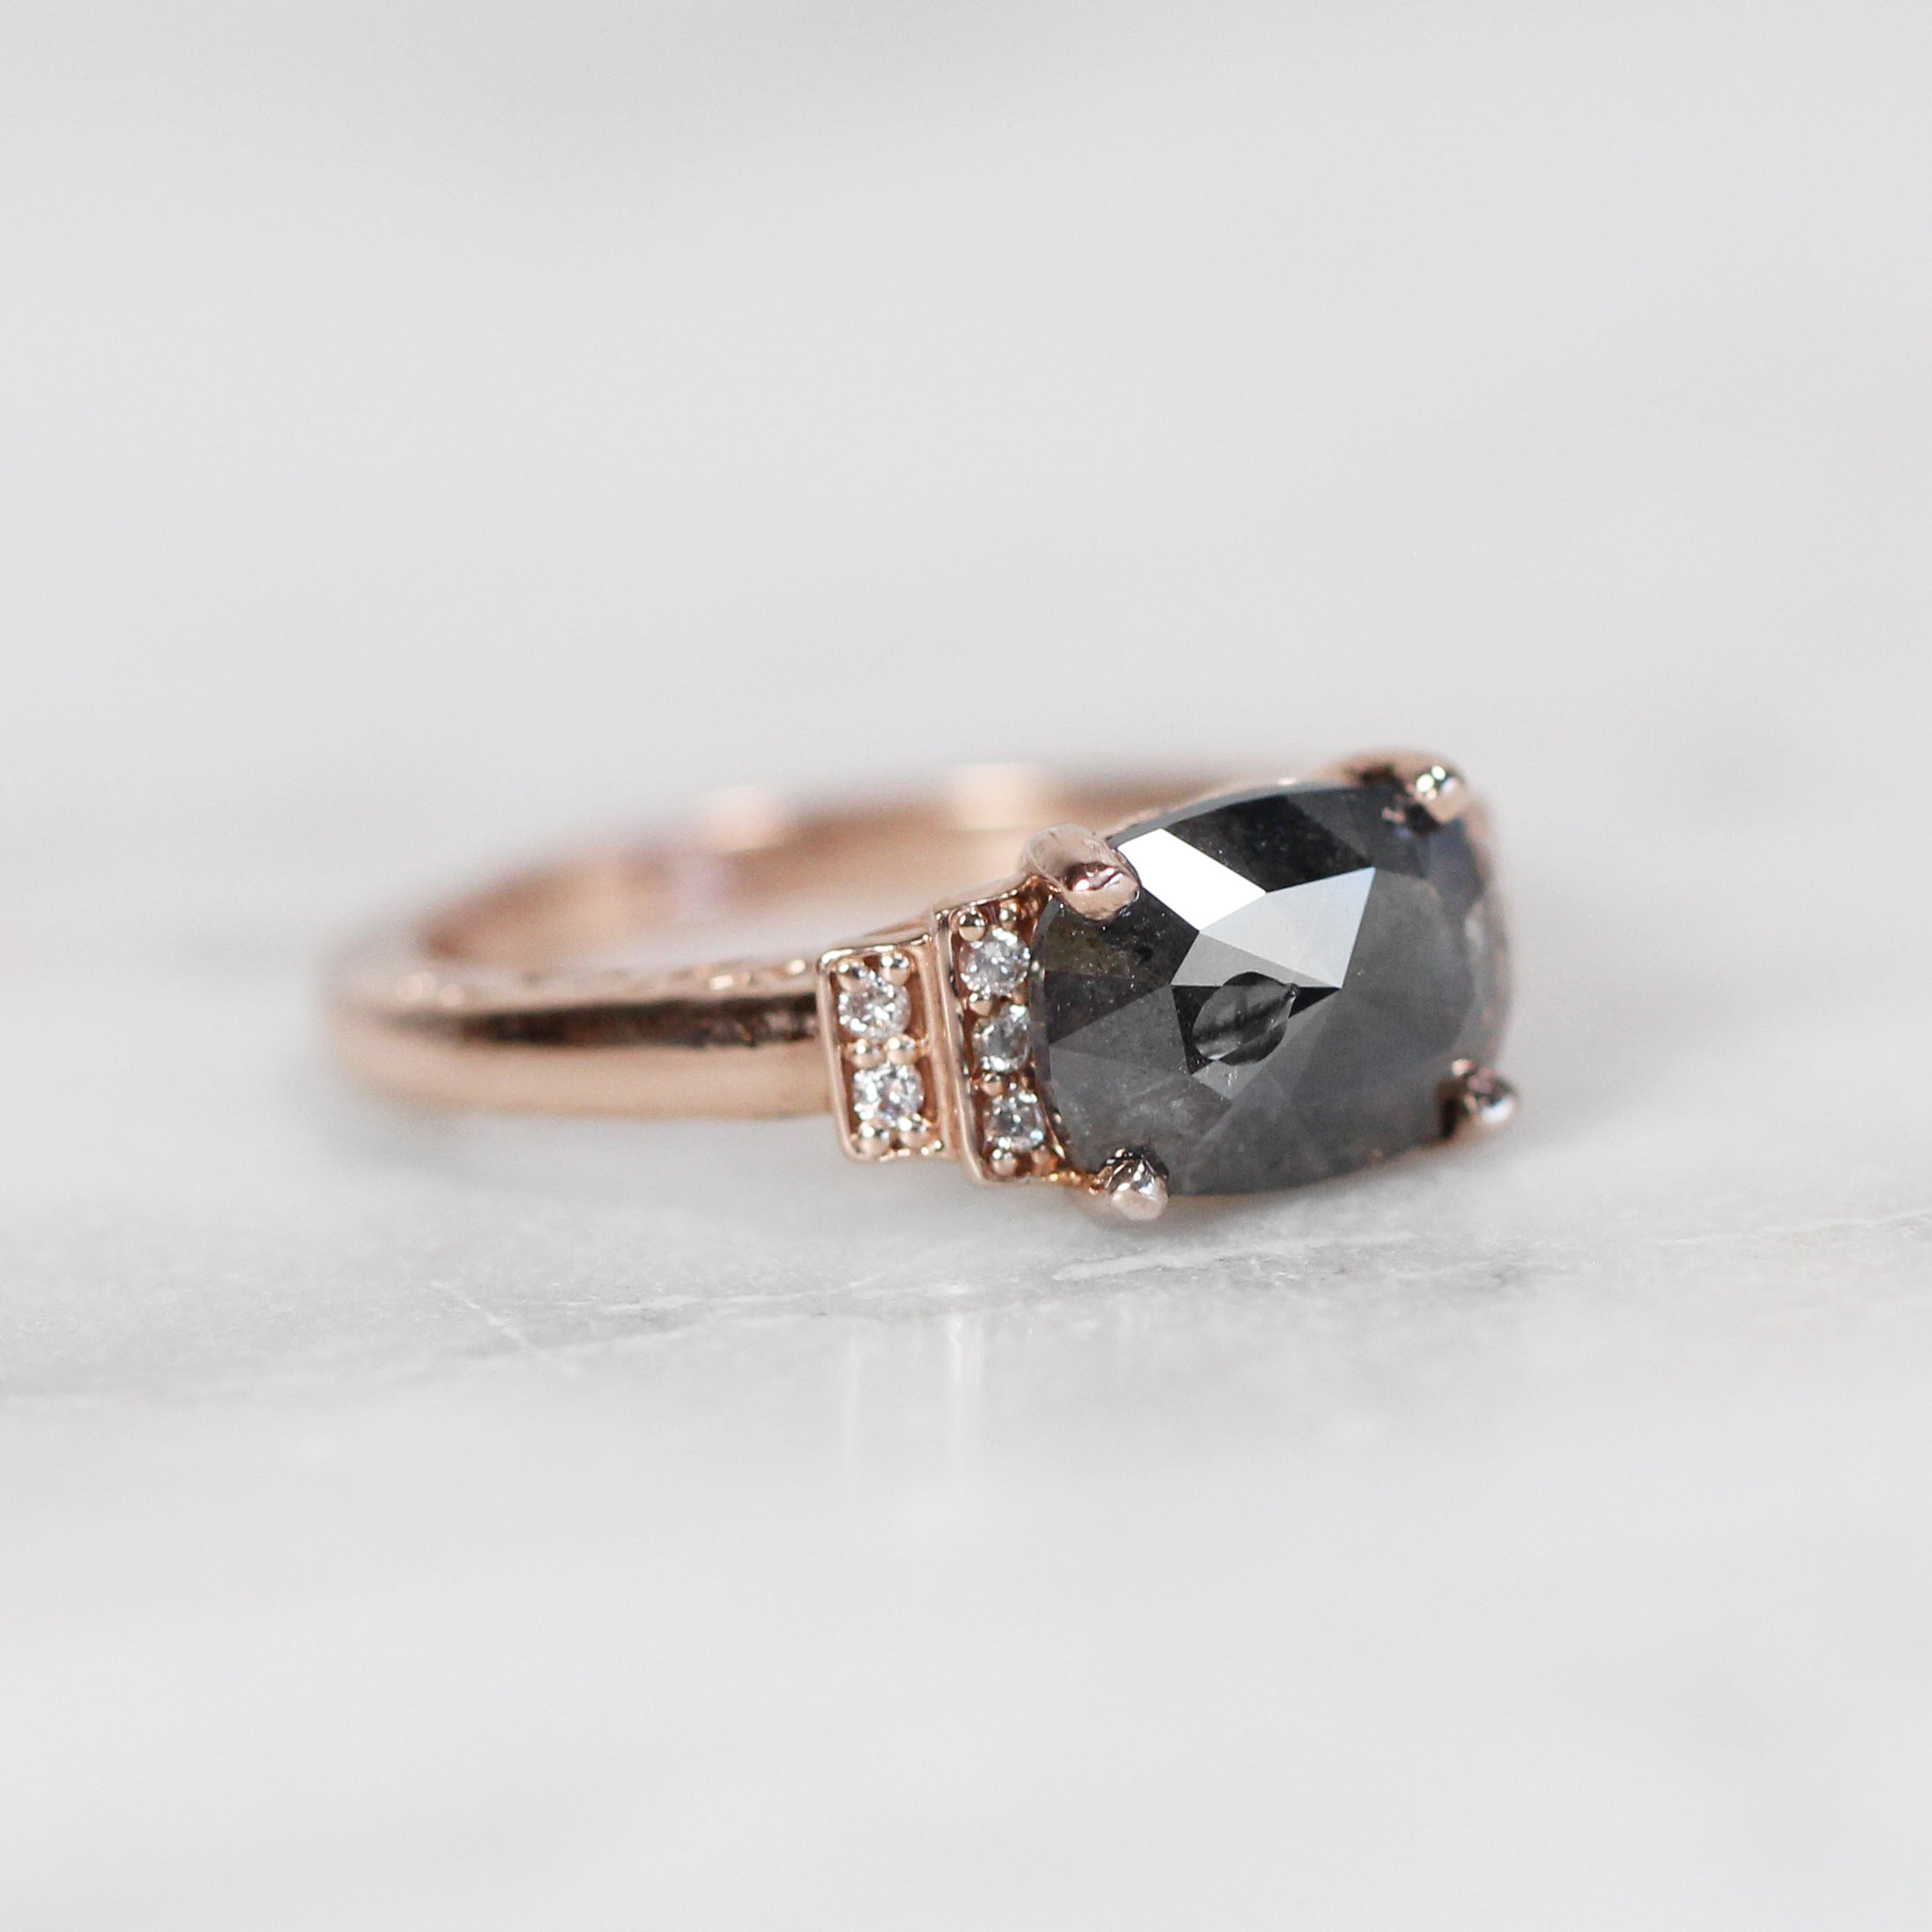 Isadora Ring with a .90ct Dark Celestial Oval Diamond and Diamond Accents in 10k Rose Gold - ready to size and ship* - Celestial Diamonds ® by Midwinter Co.